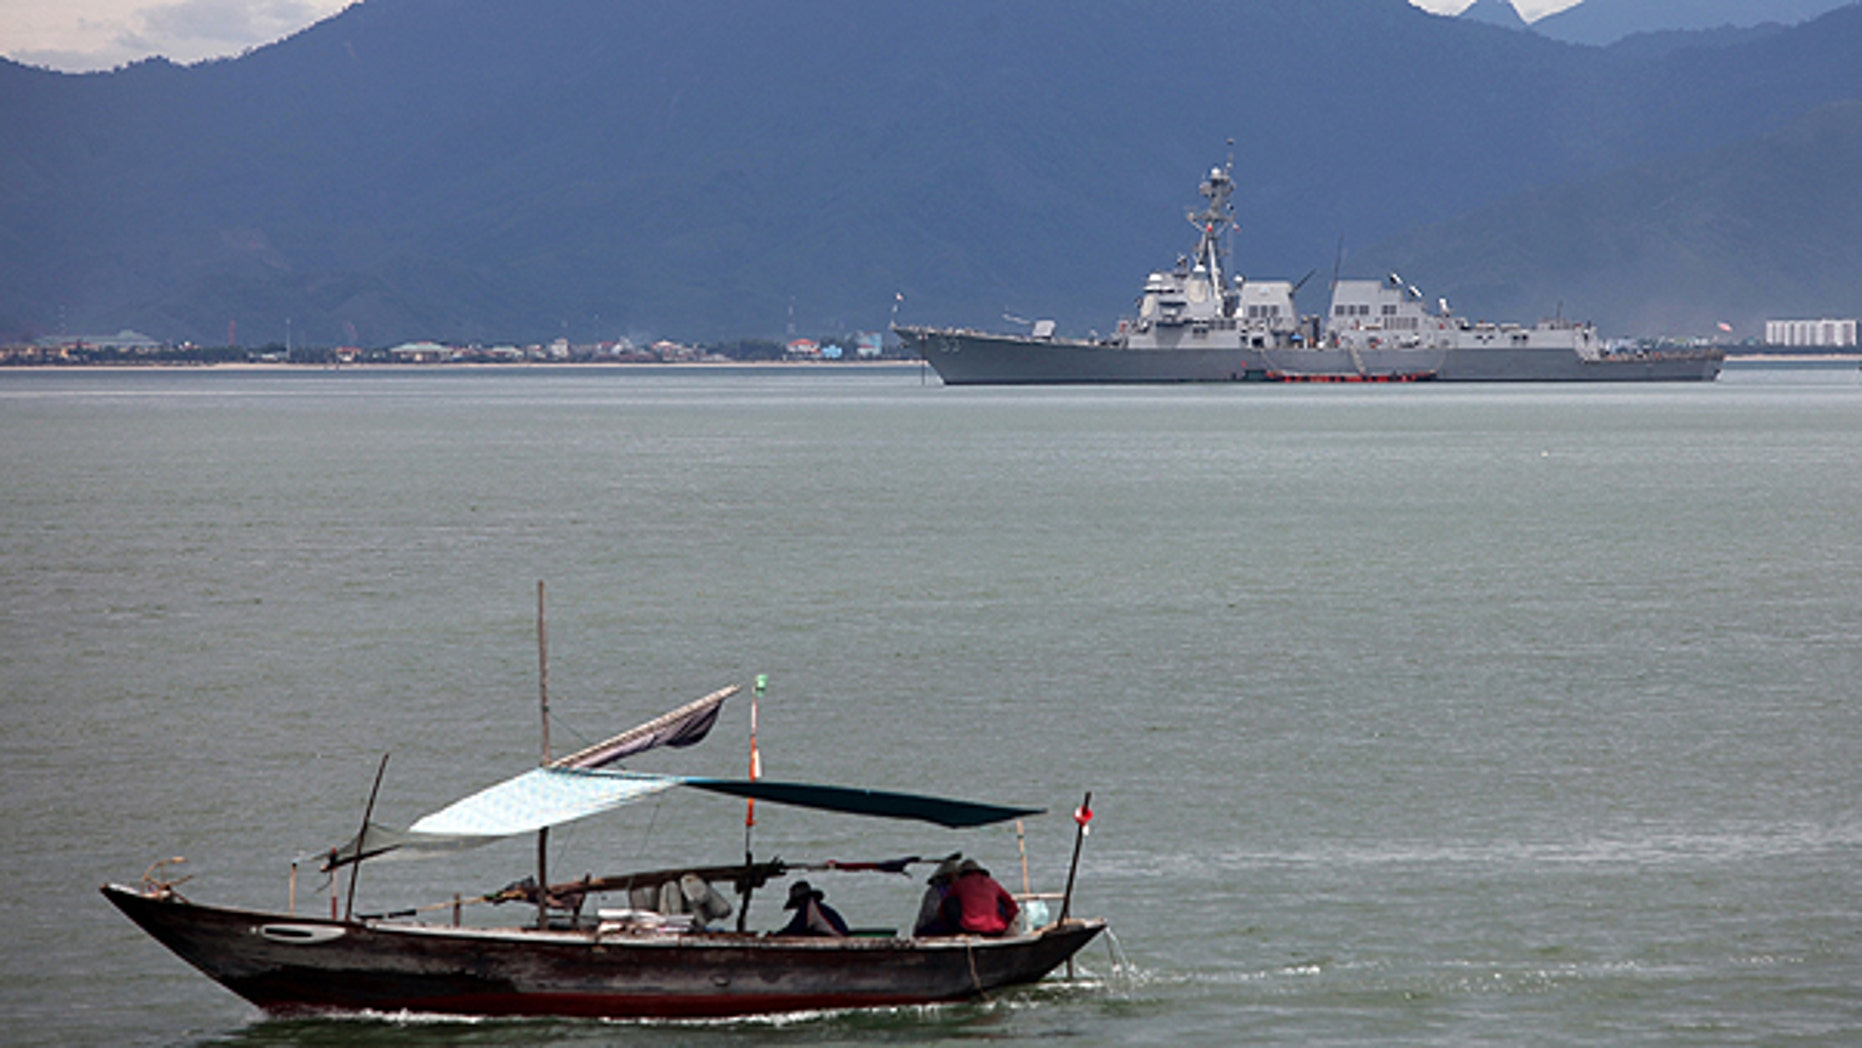 July 15: A Vietnamese fisher boat passes near the guided missile destroyer USS Chung-Hoon which is anchored on the background during a port visit for the naval exchange activities of the guided missile destroyers USS Chung-Hoon and USS Preble, as well as the rescue and salvage ship USNS Safeguard to Danang port, Danang province, Vietnam.